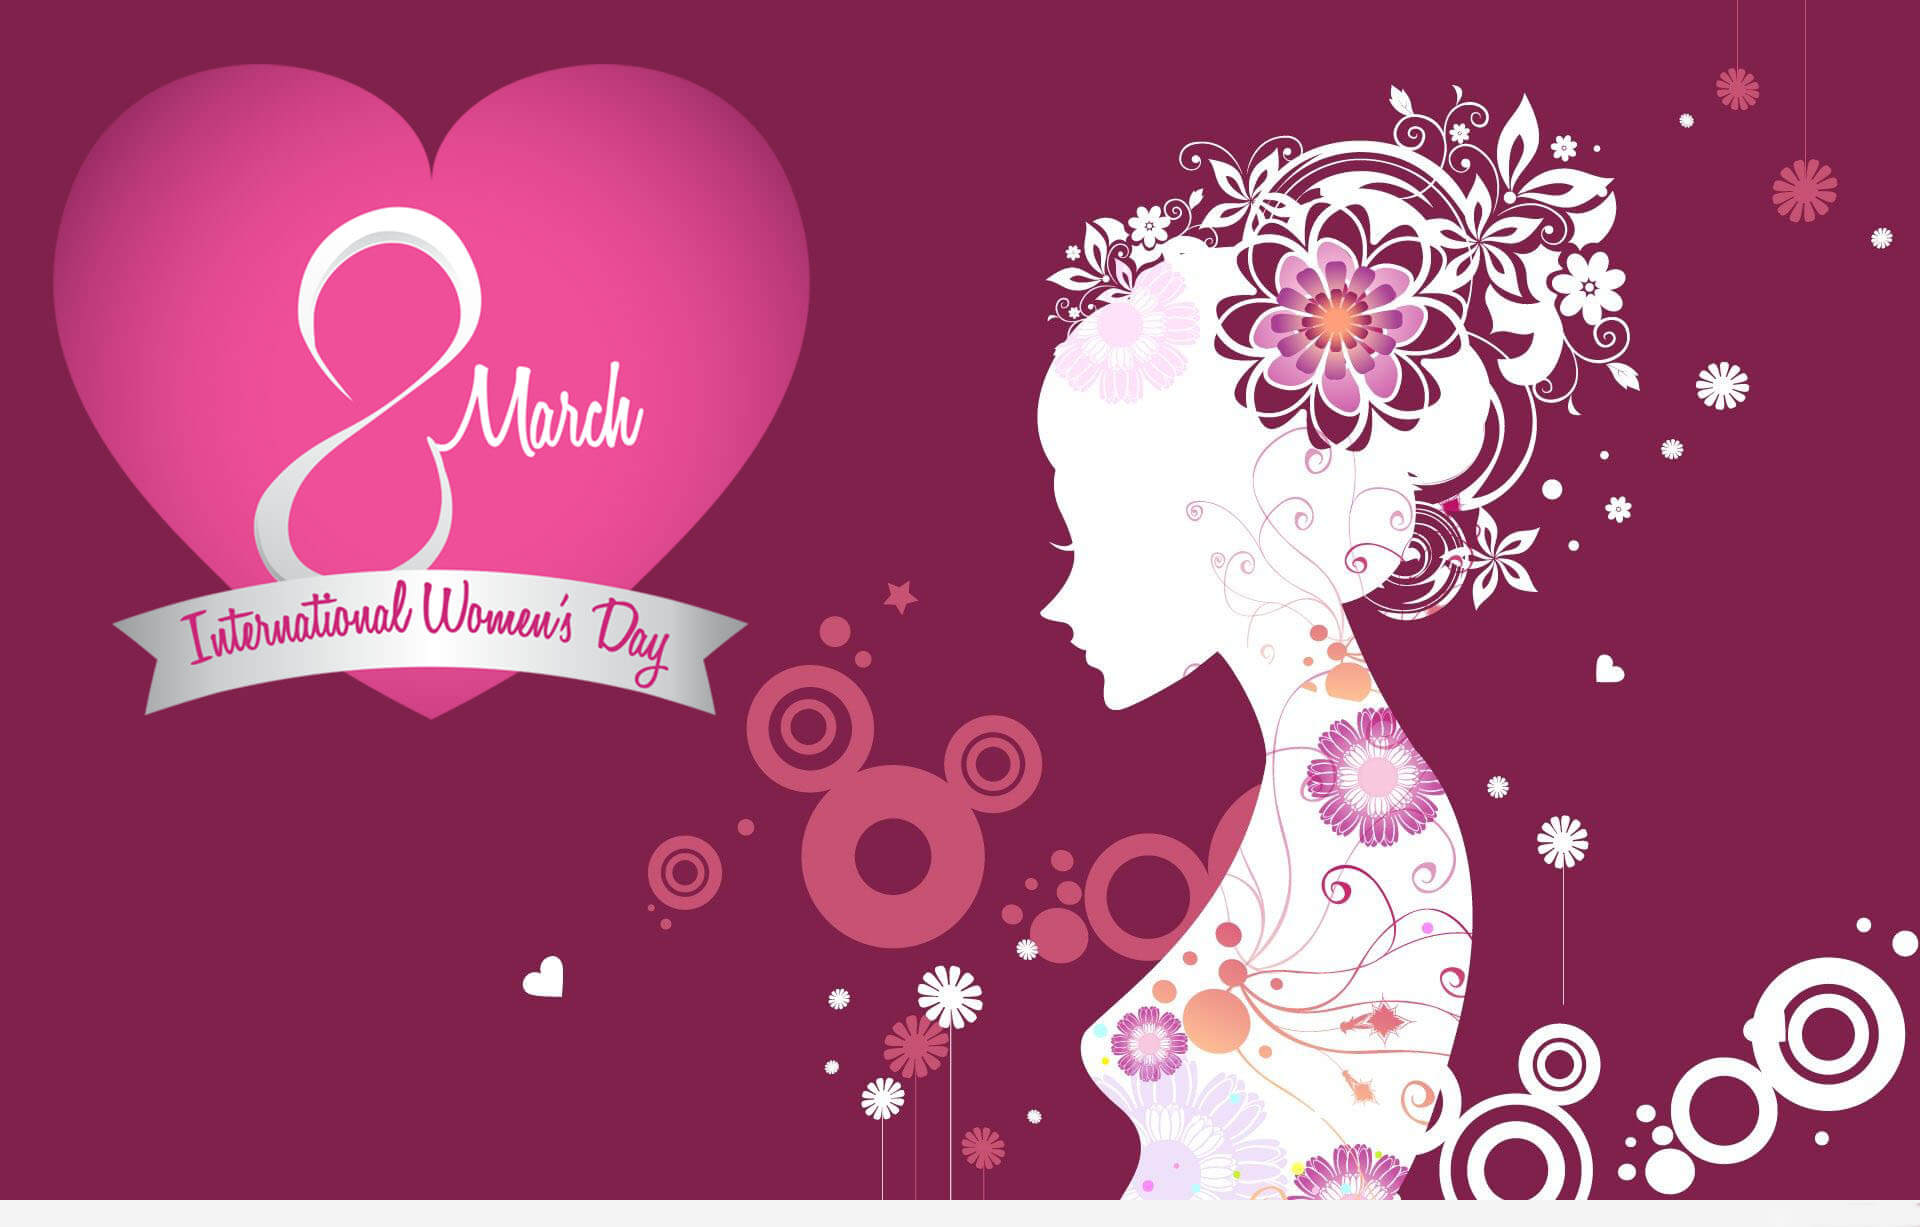 happy international womens day art hd wallpaper